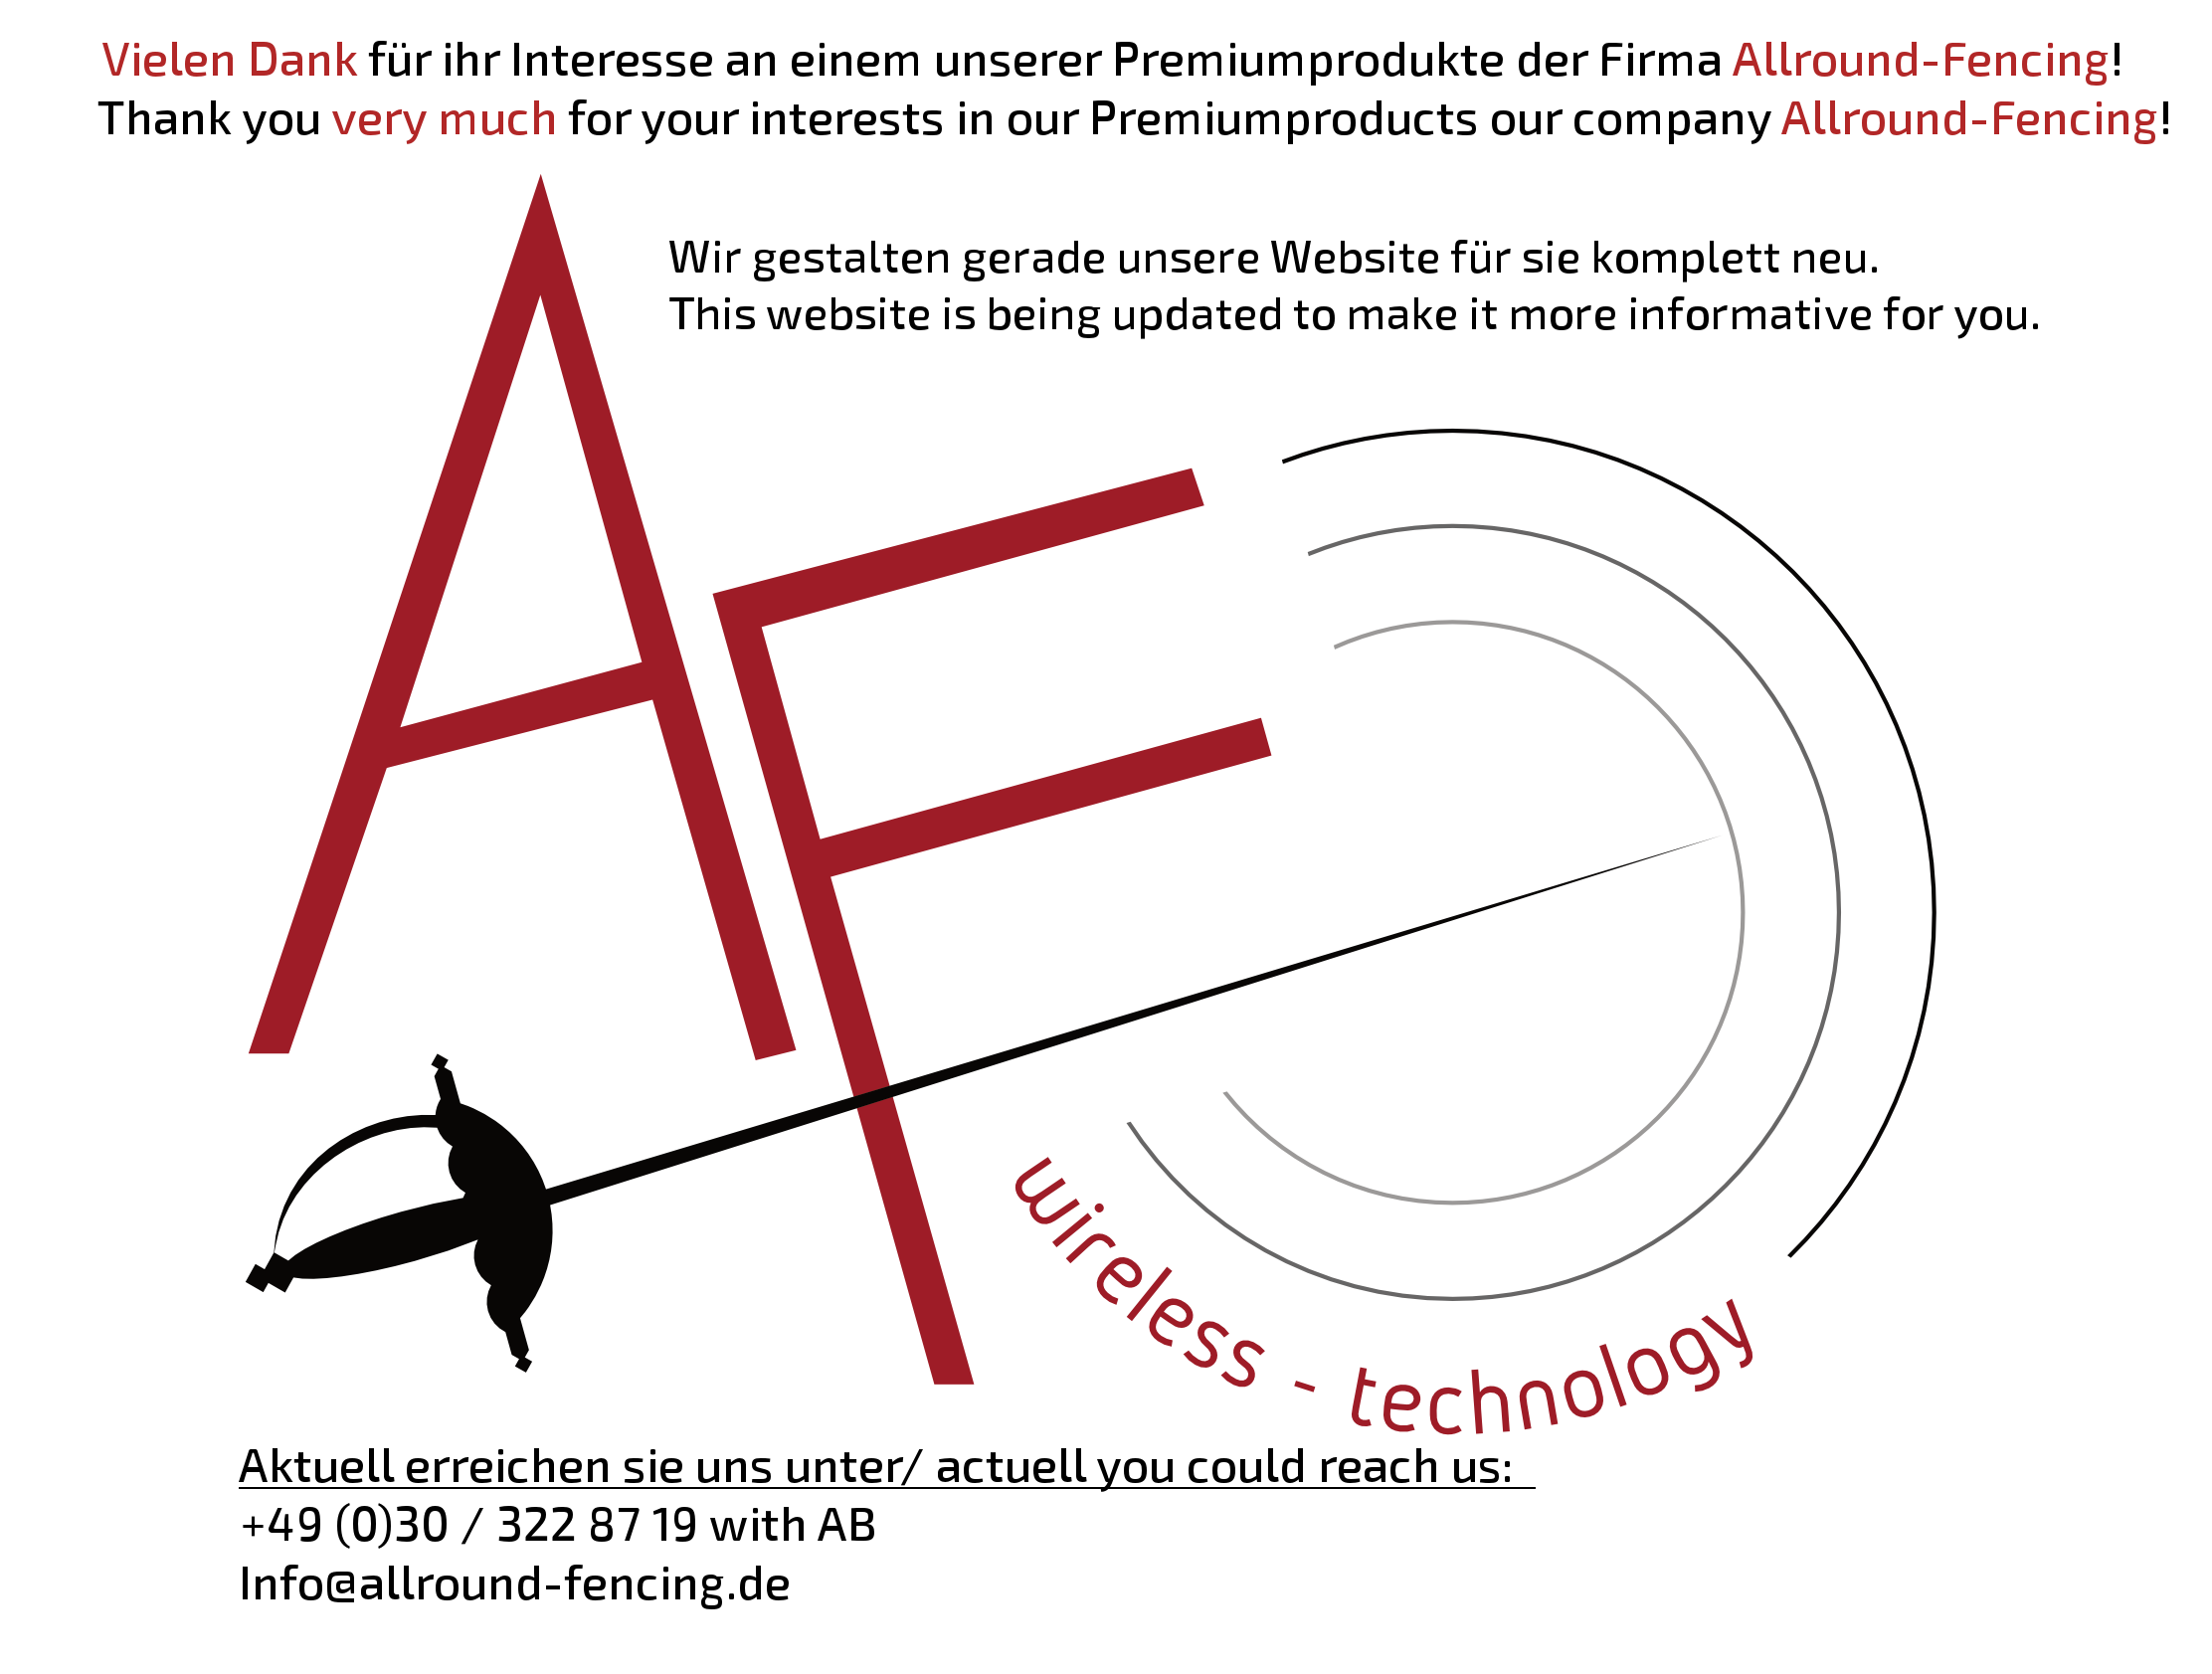 Allround Fencing is coming soon